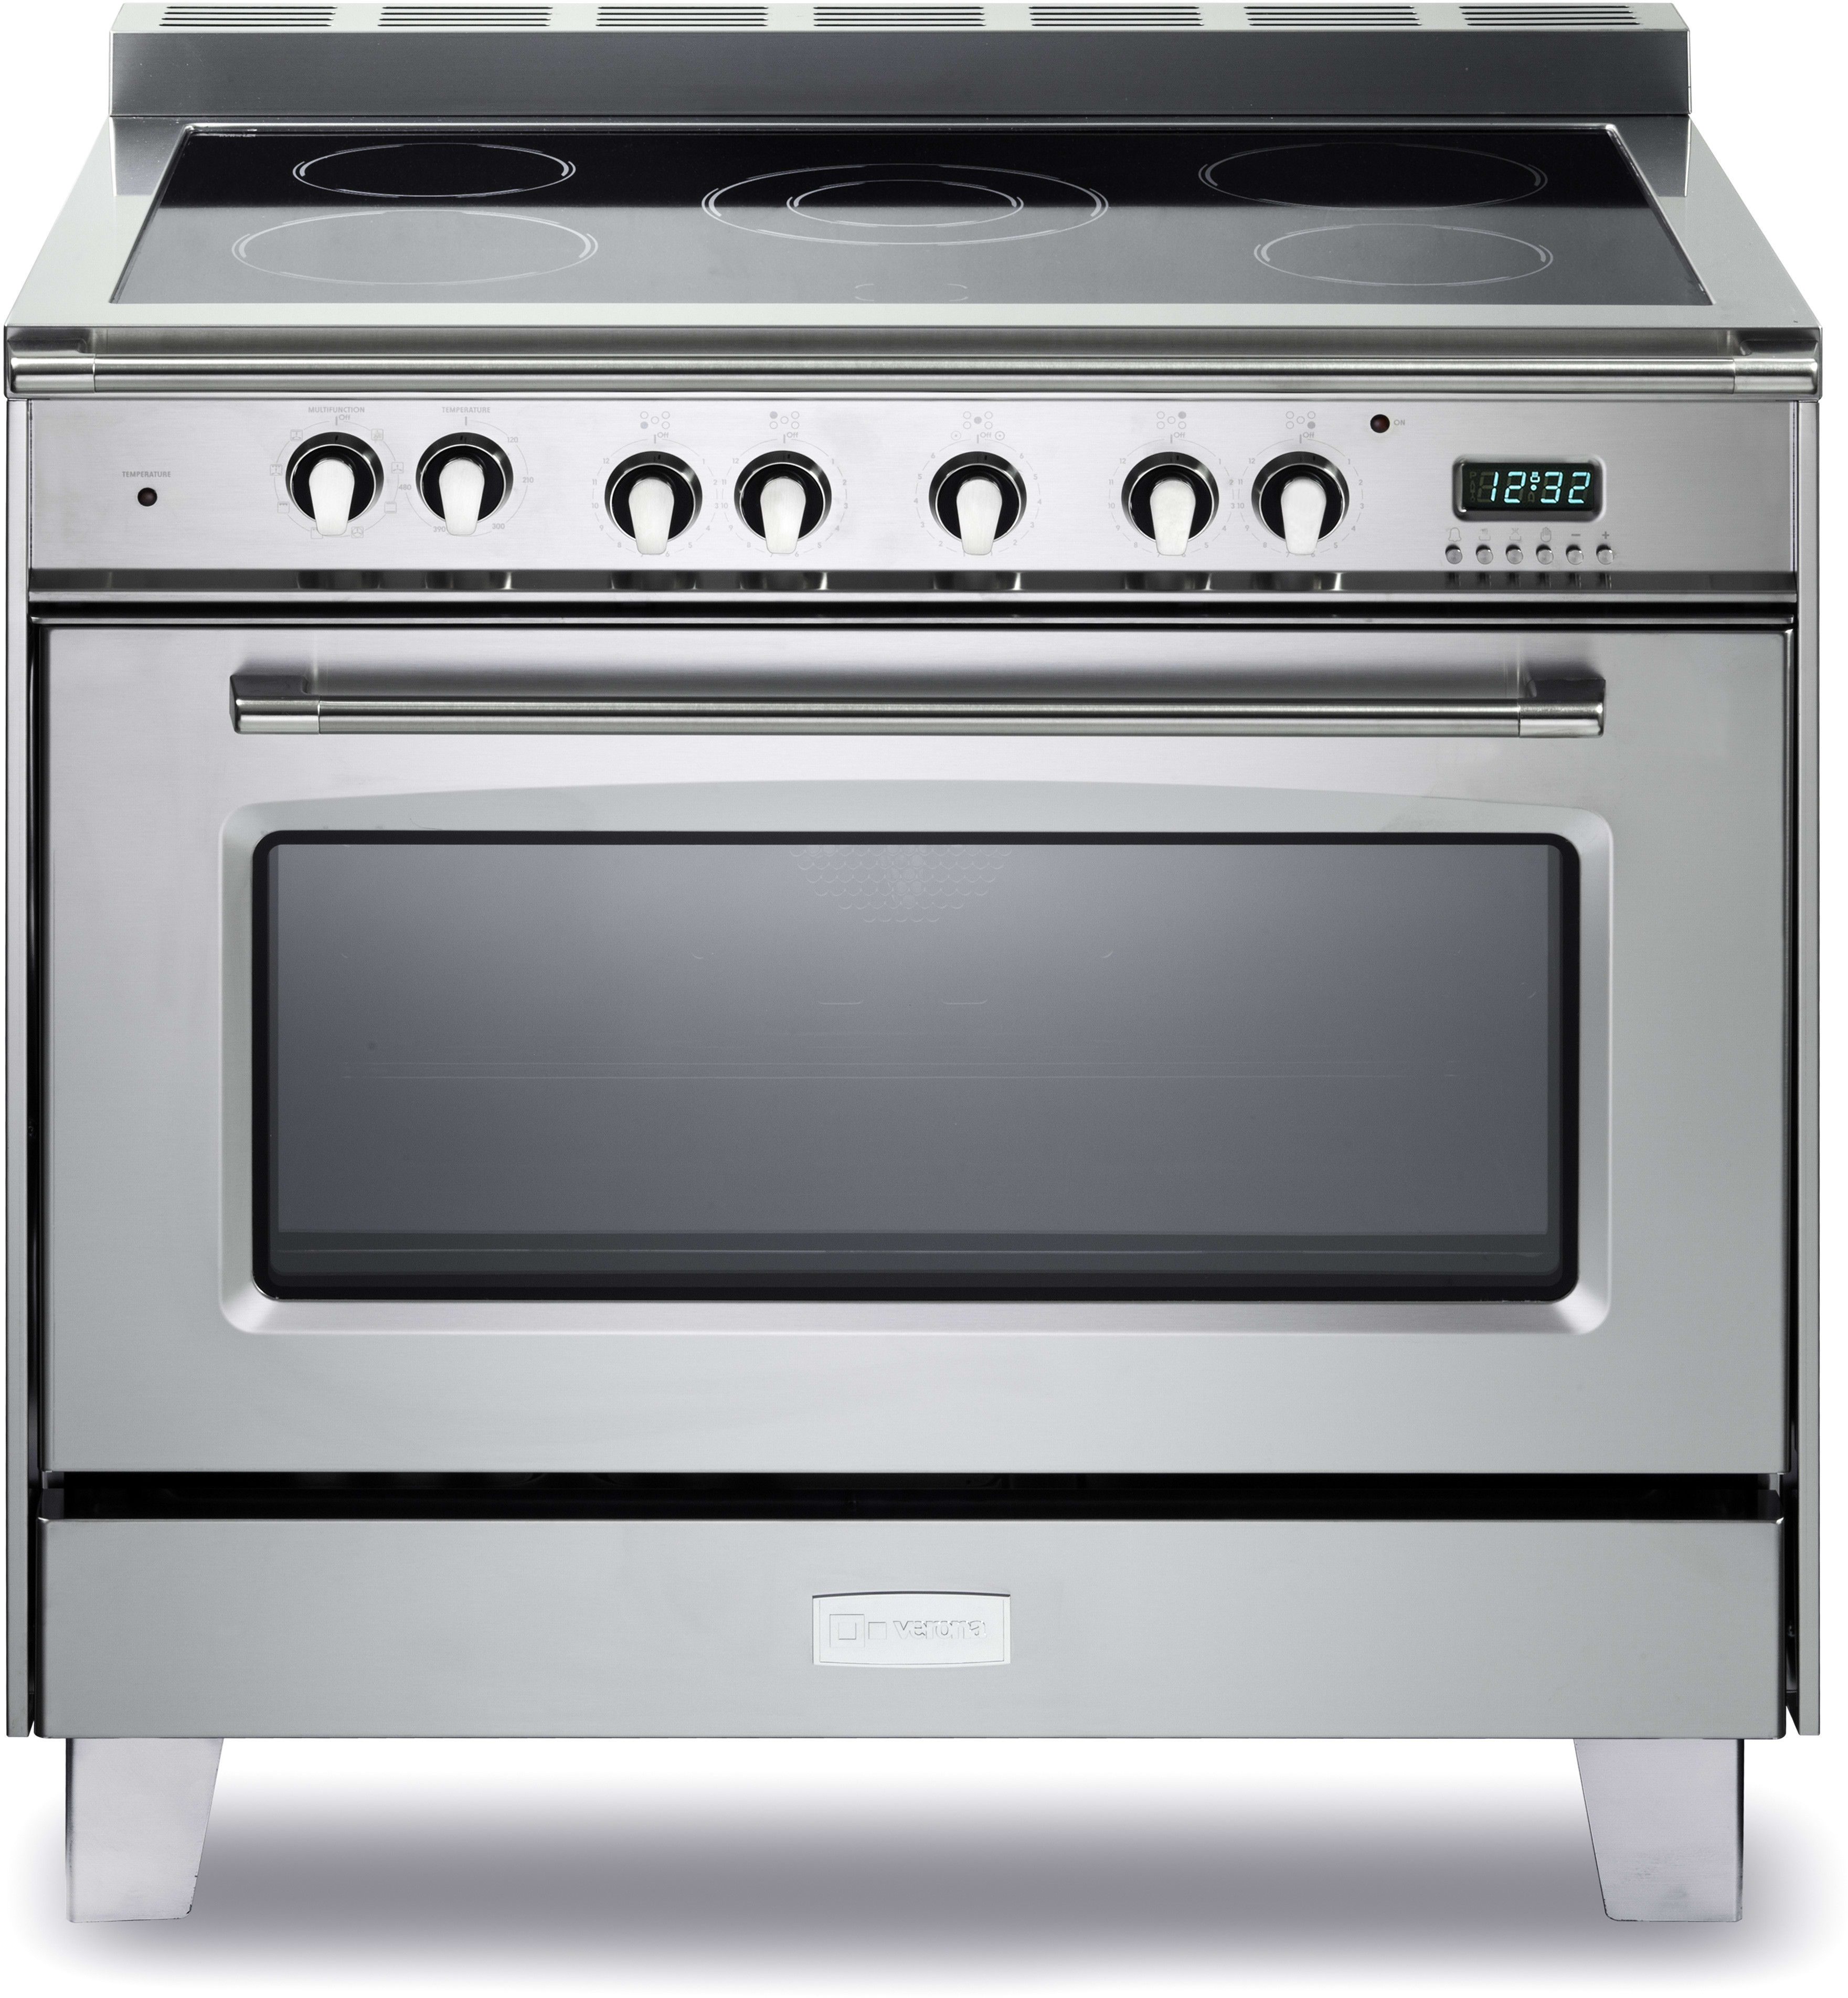 verona vclfsee365ss 36 inch freestanding electric range with 5 cooktop heat zones 4 0 cu ft. Black Bedroom Furniture Sets. Home Design Ideas